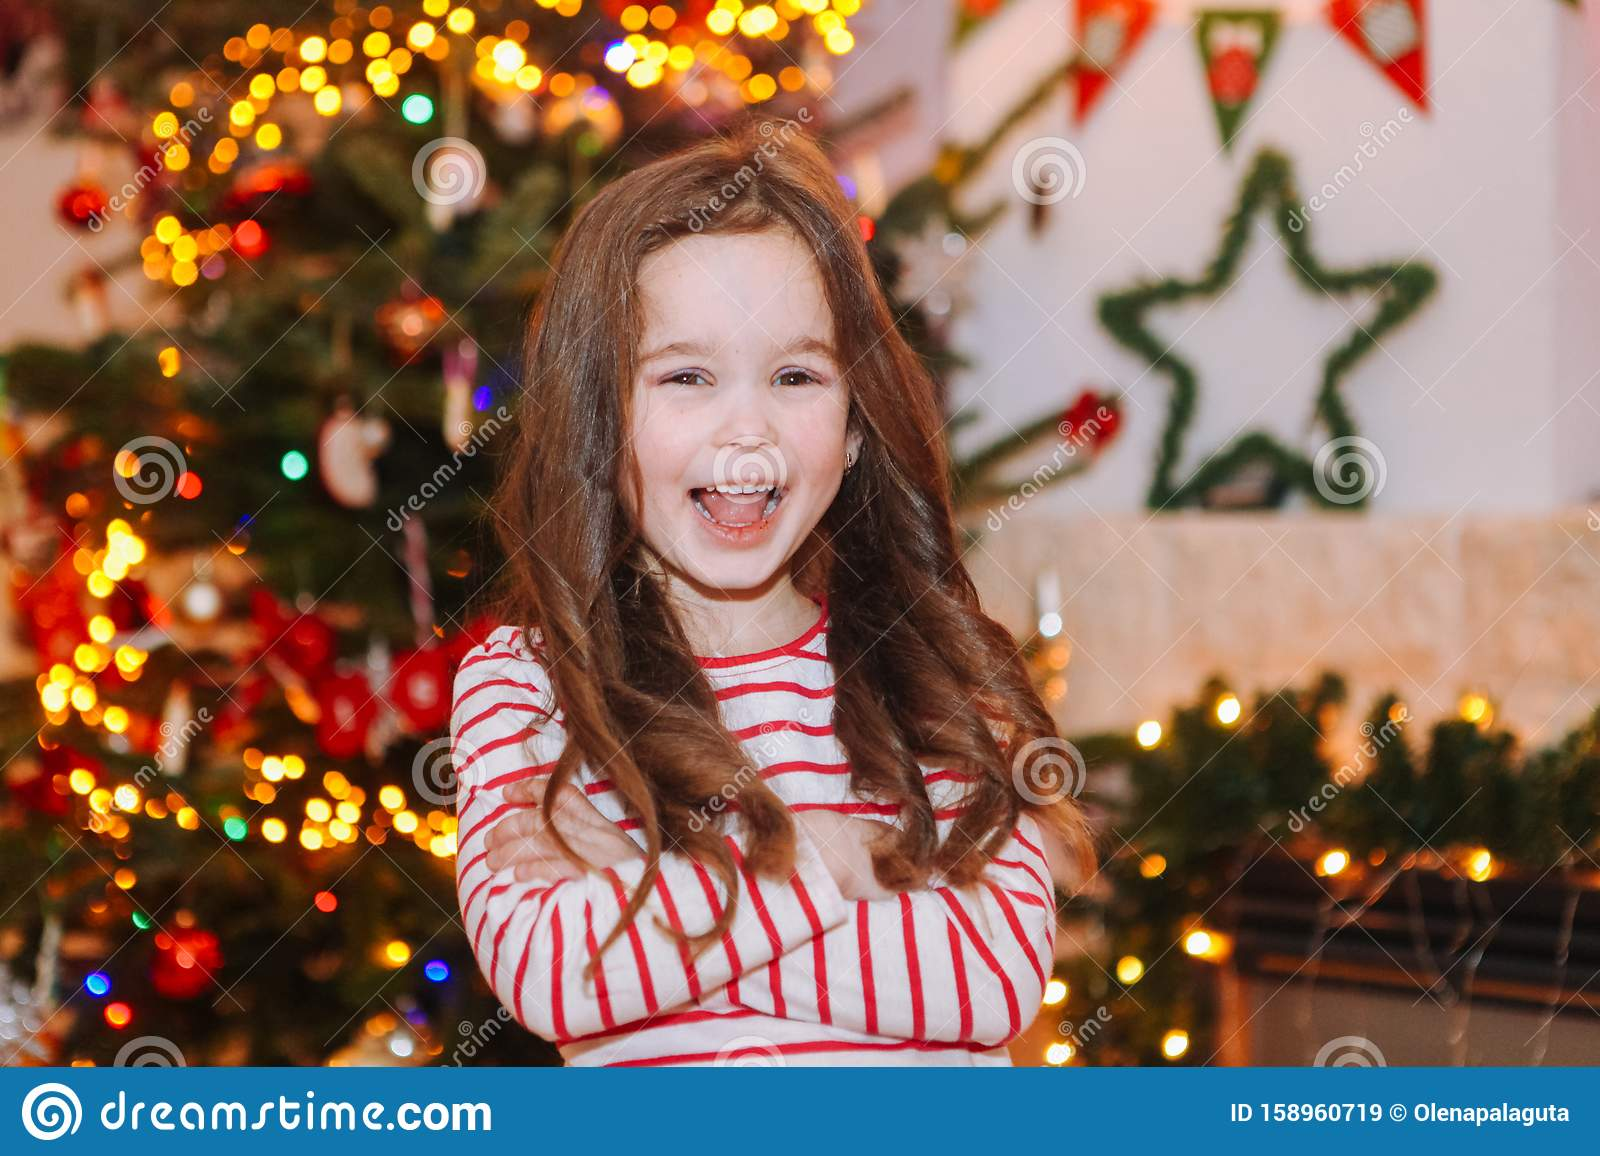 Happy Little Kids Under Christmas Tree At Home Stock Image Image Of Celebration December 158960719